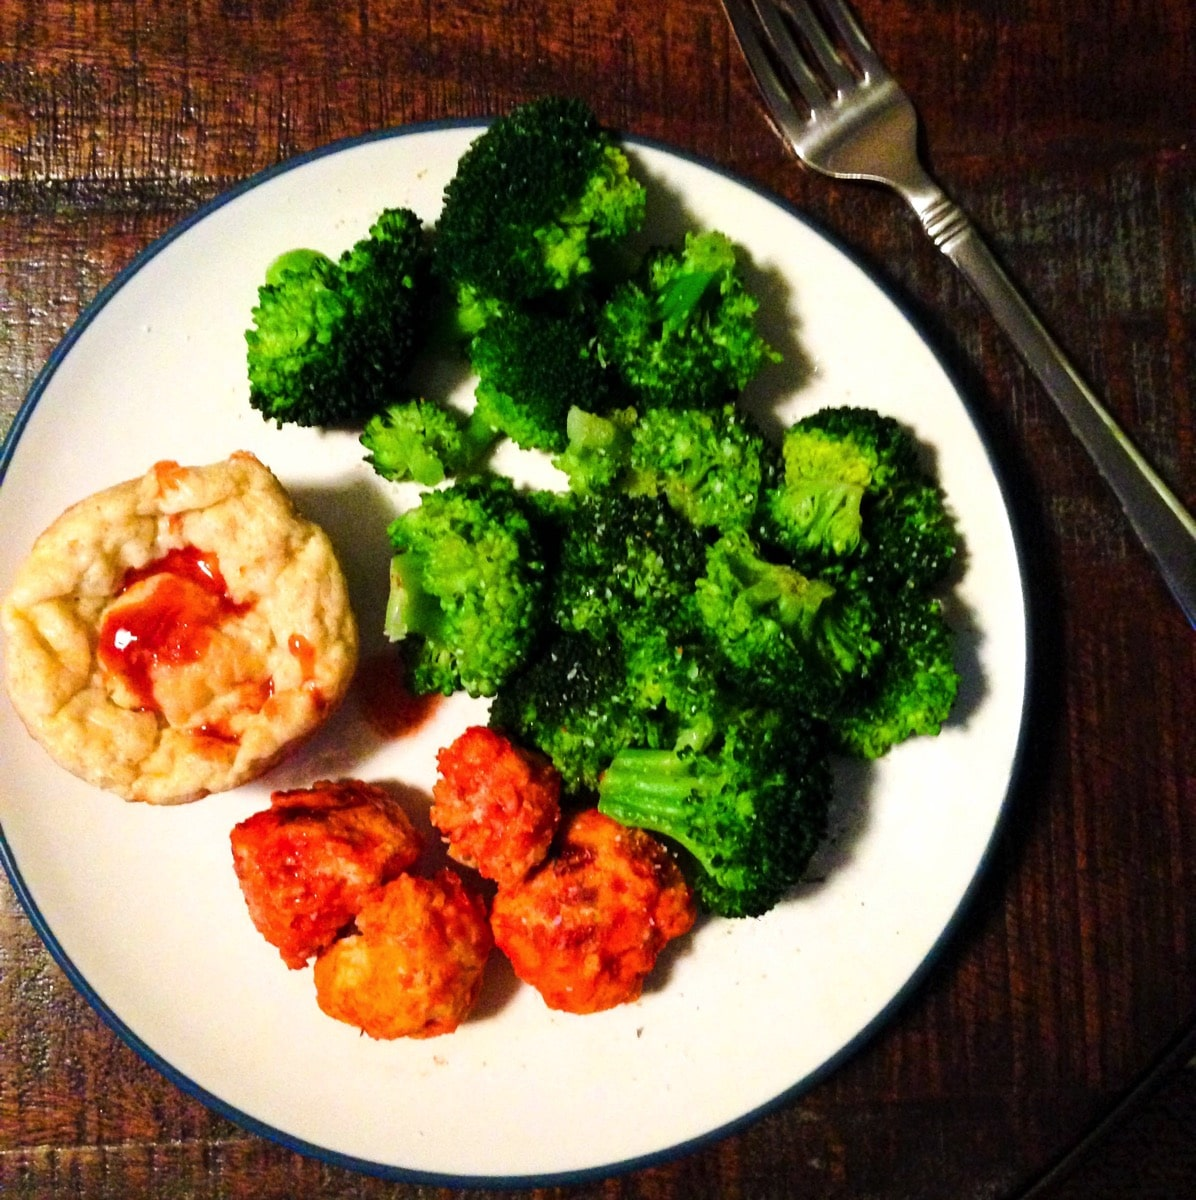 160208 muffin meatballs broccoli